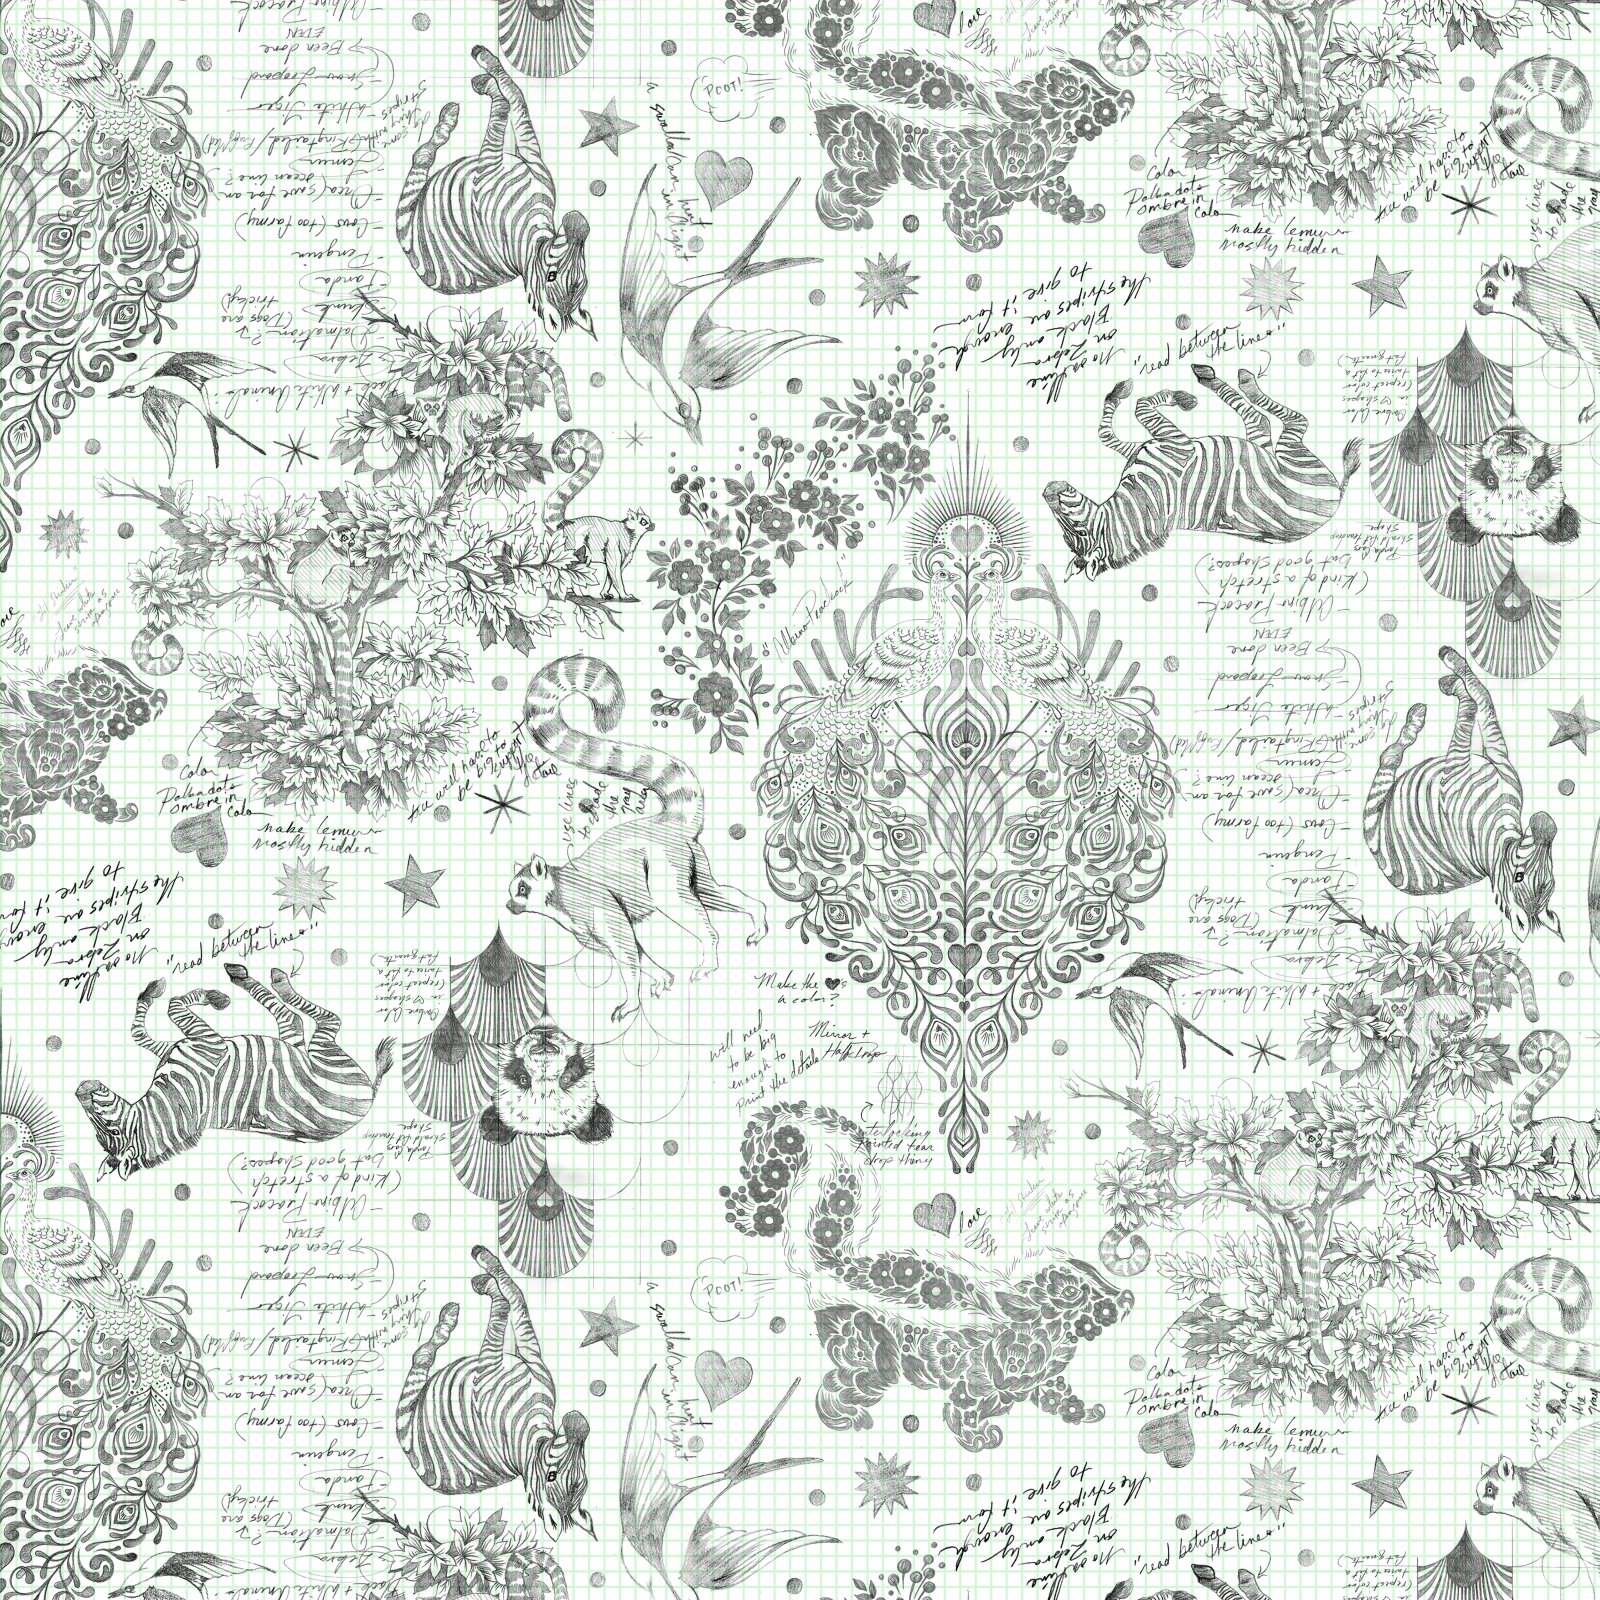 PREORDER Backing Fabric - 3 yds Sketchyer from LINEWORK